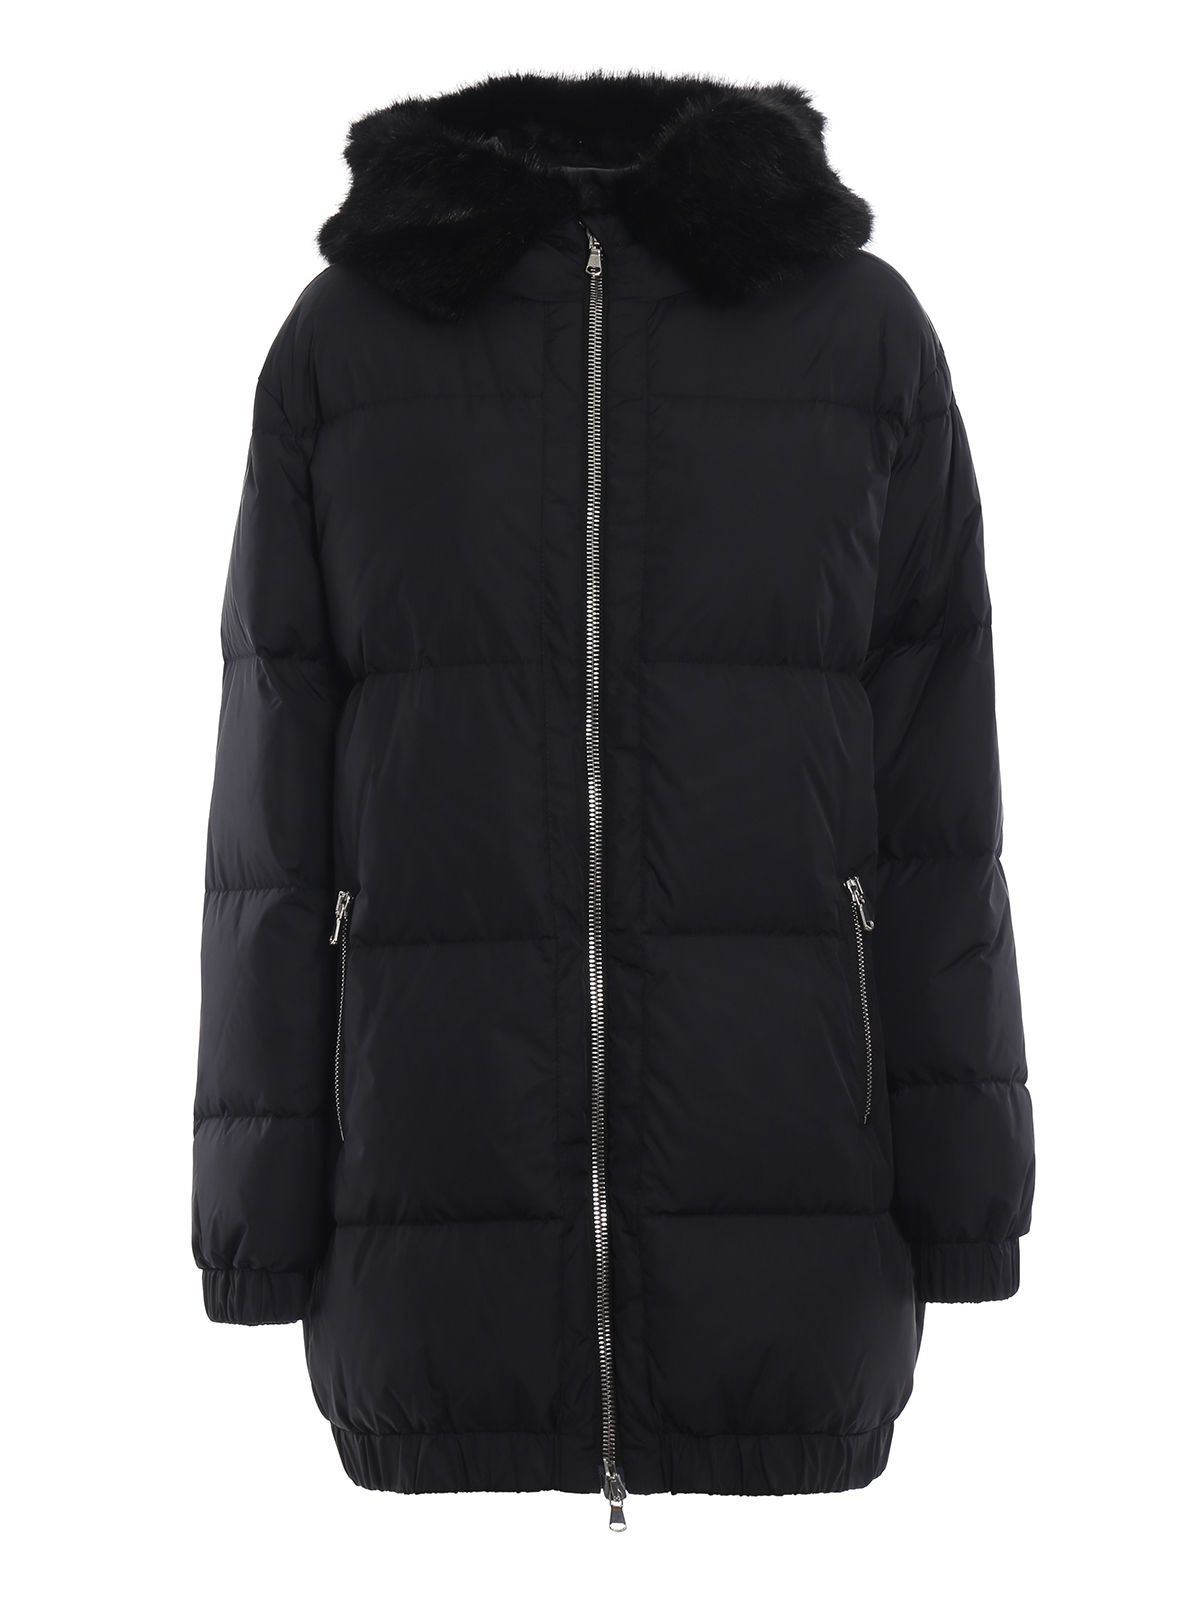 Moschino Faux Fur Padded Jacket